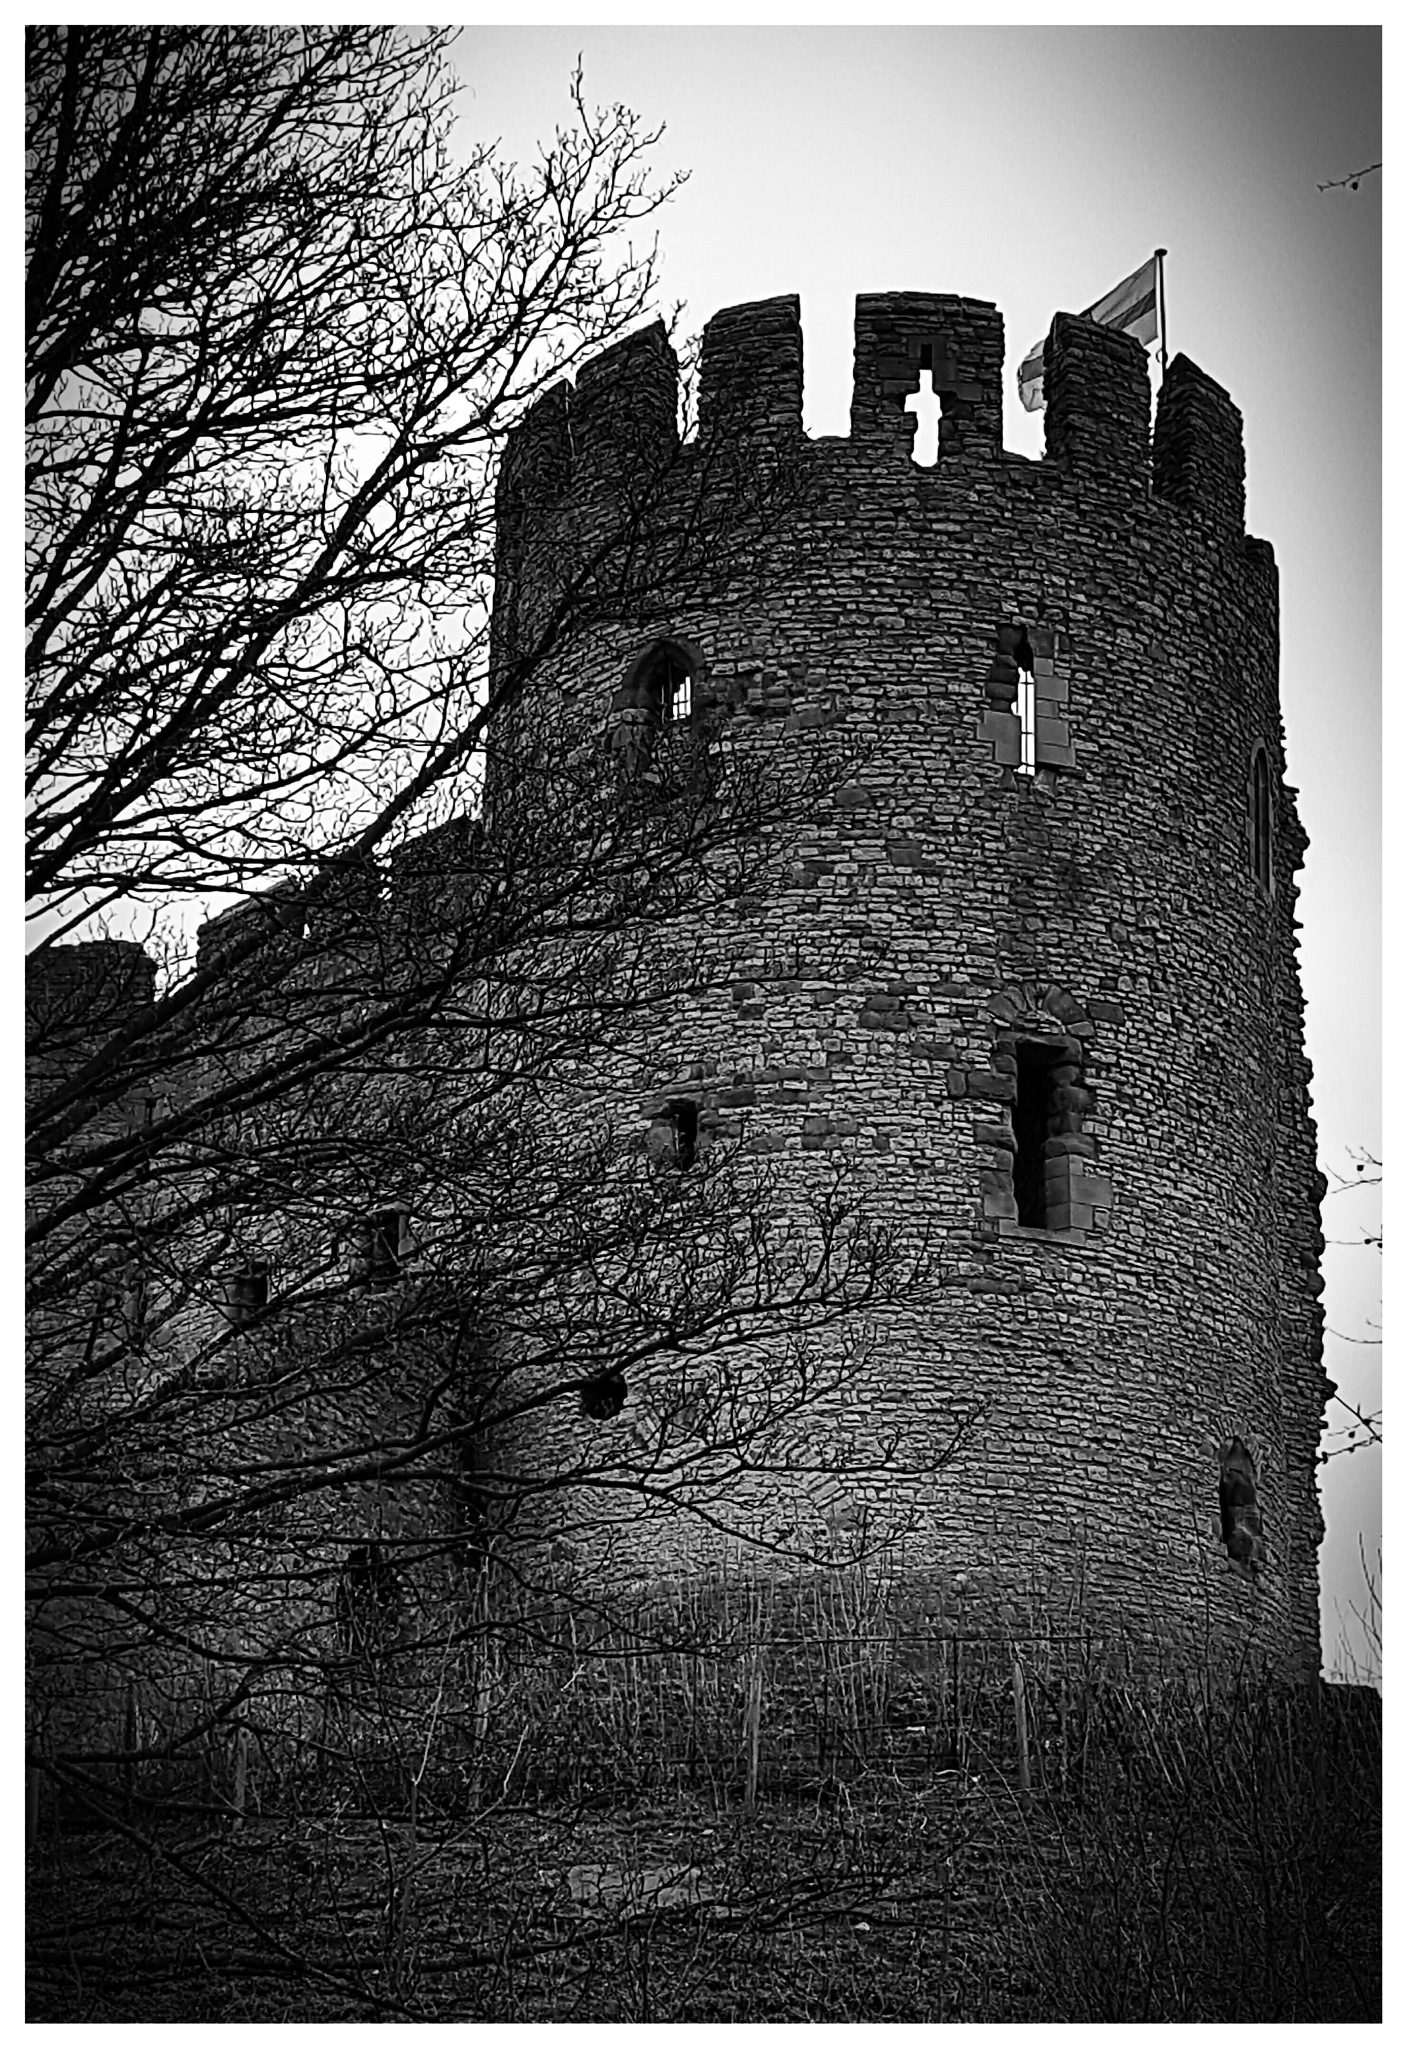 The Castle Dudley Zoo by Yvonne Lewis